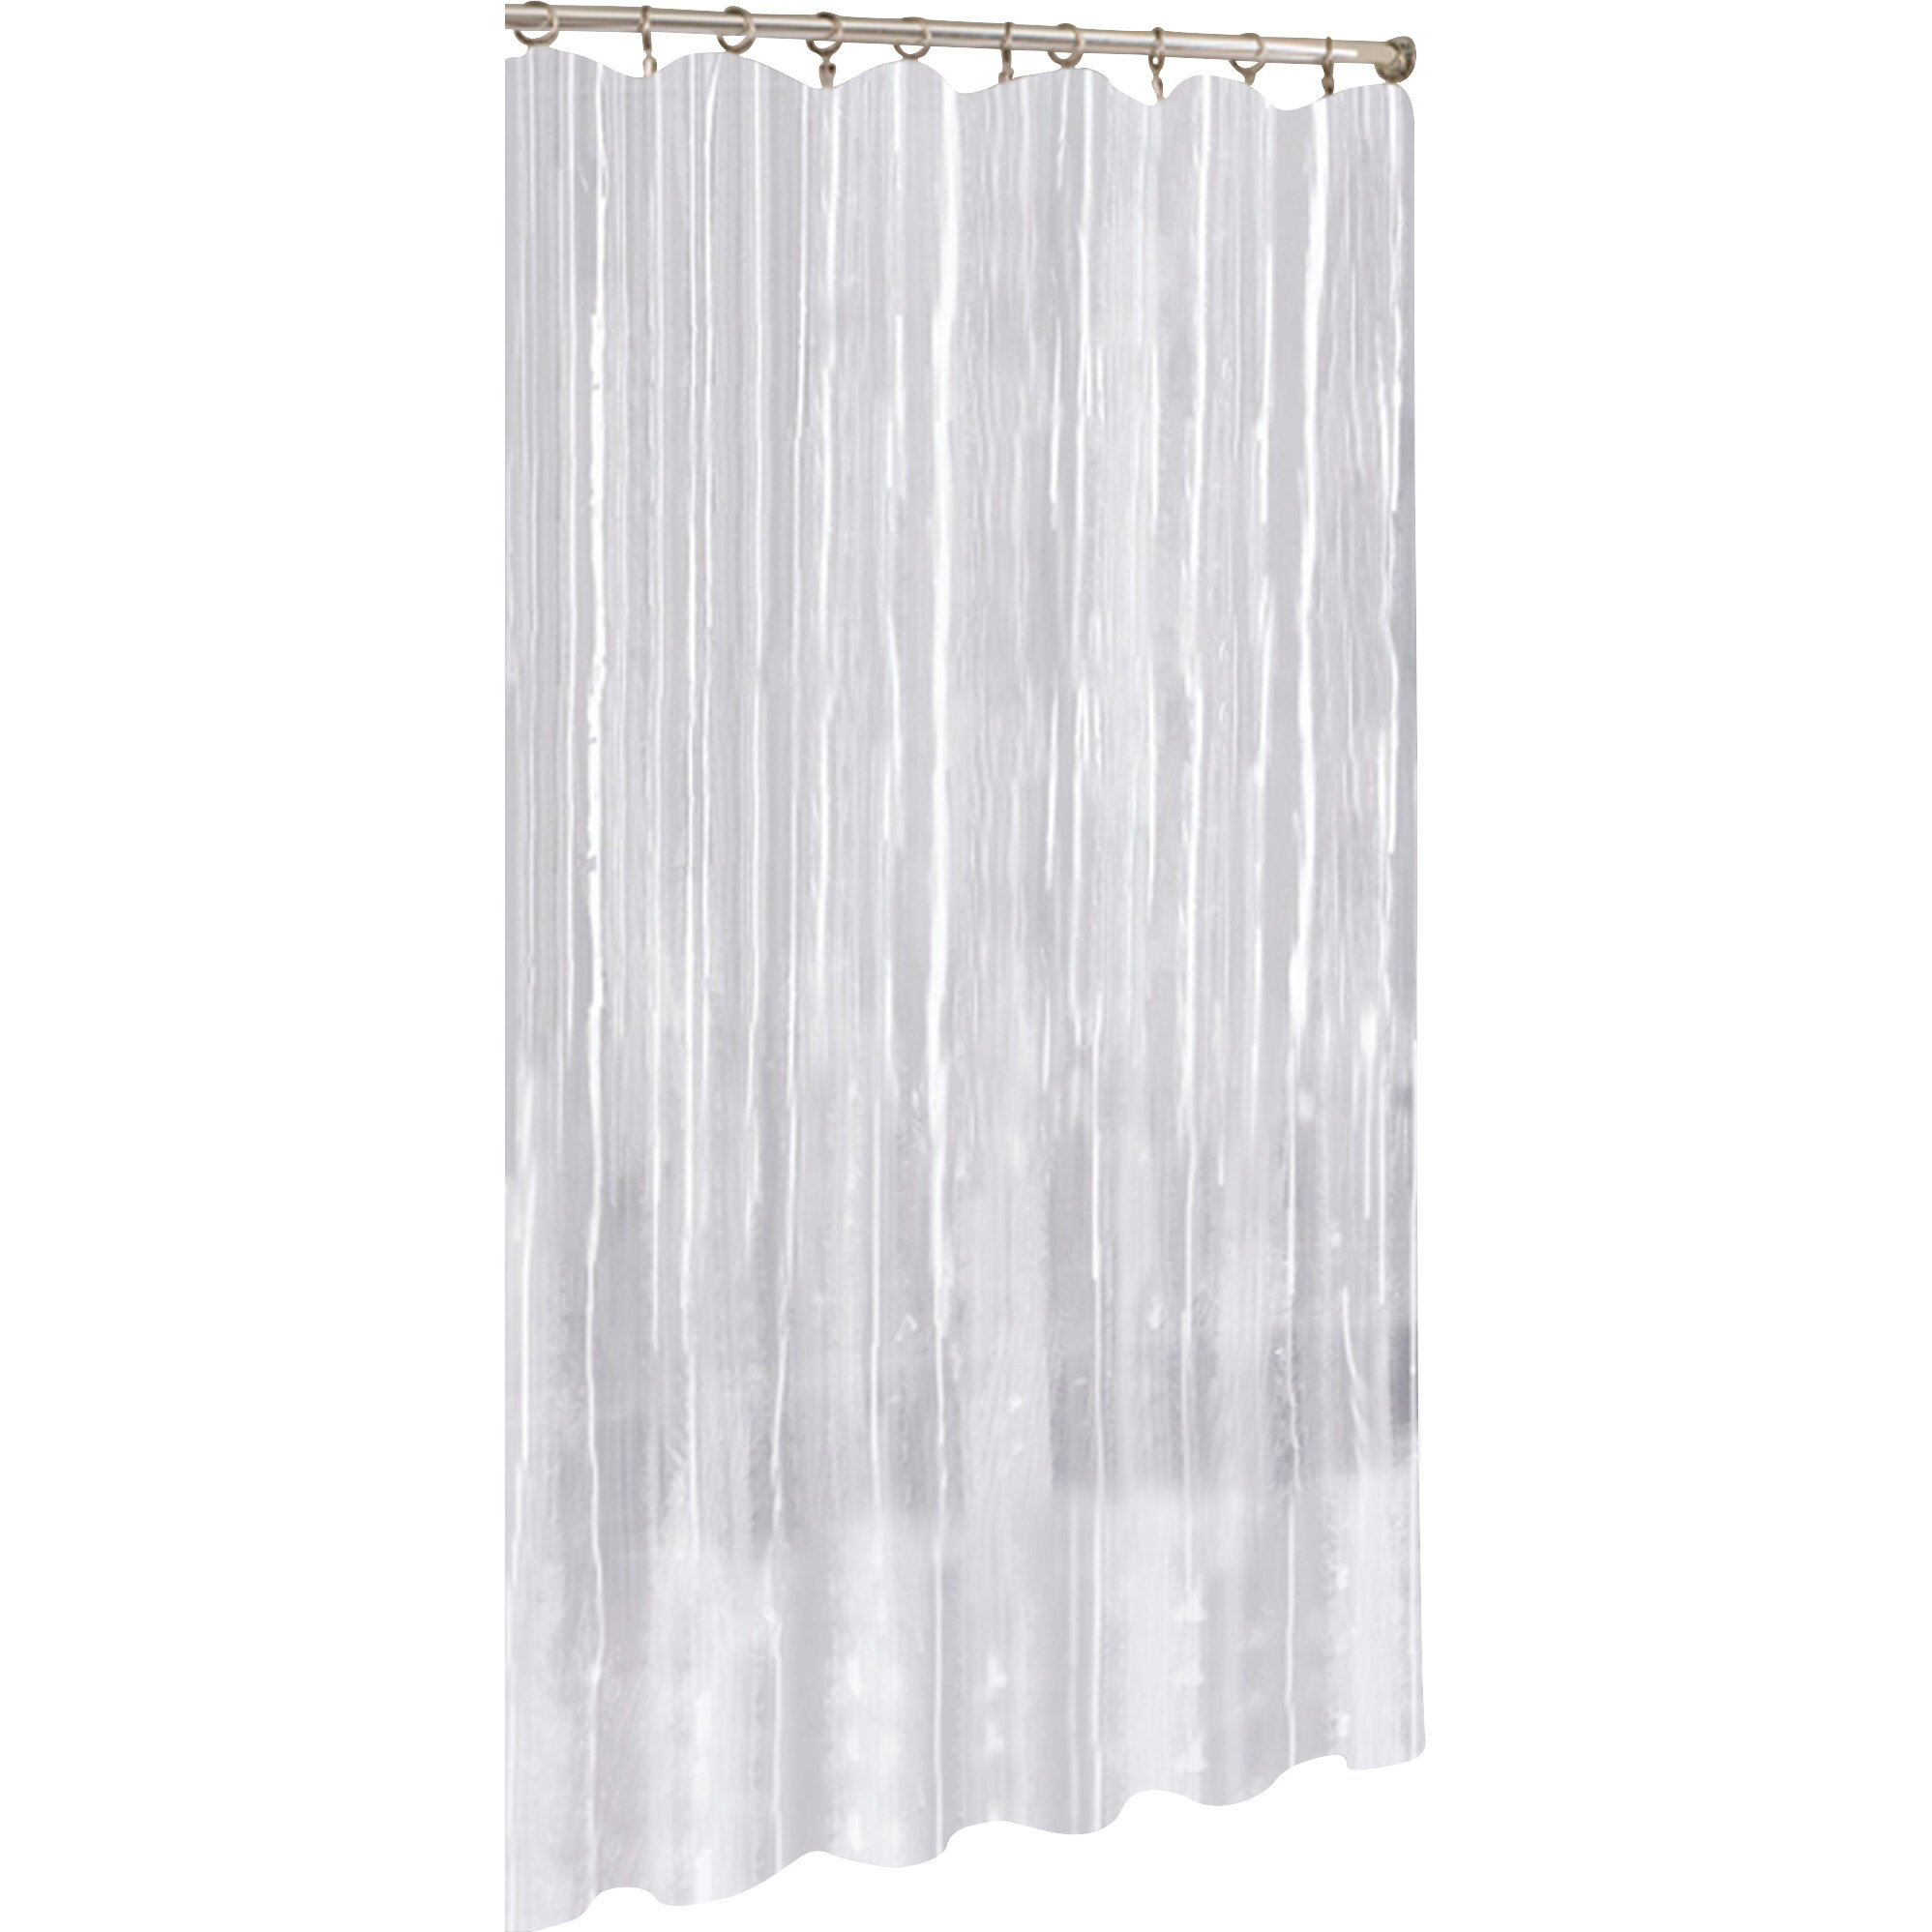 Anti Mold Shower Curtain Liner Stall Size Shower Curtains